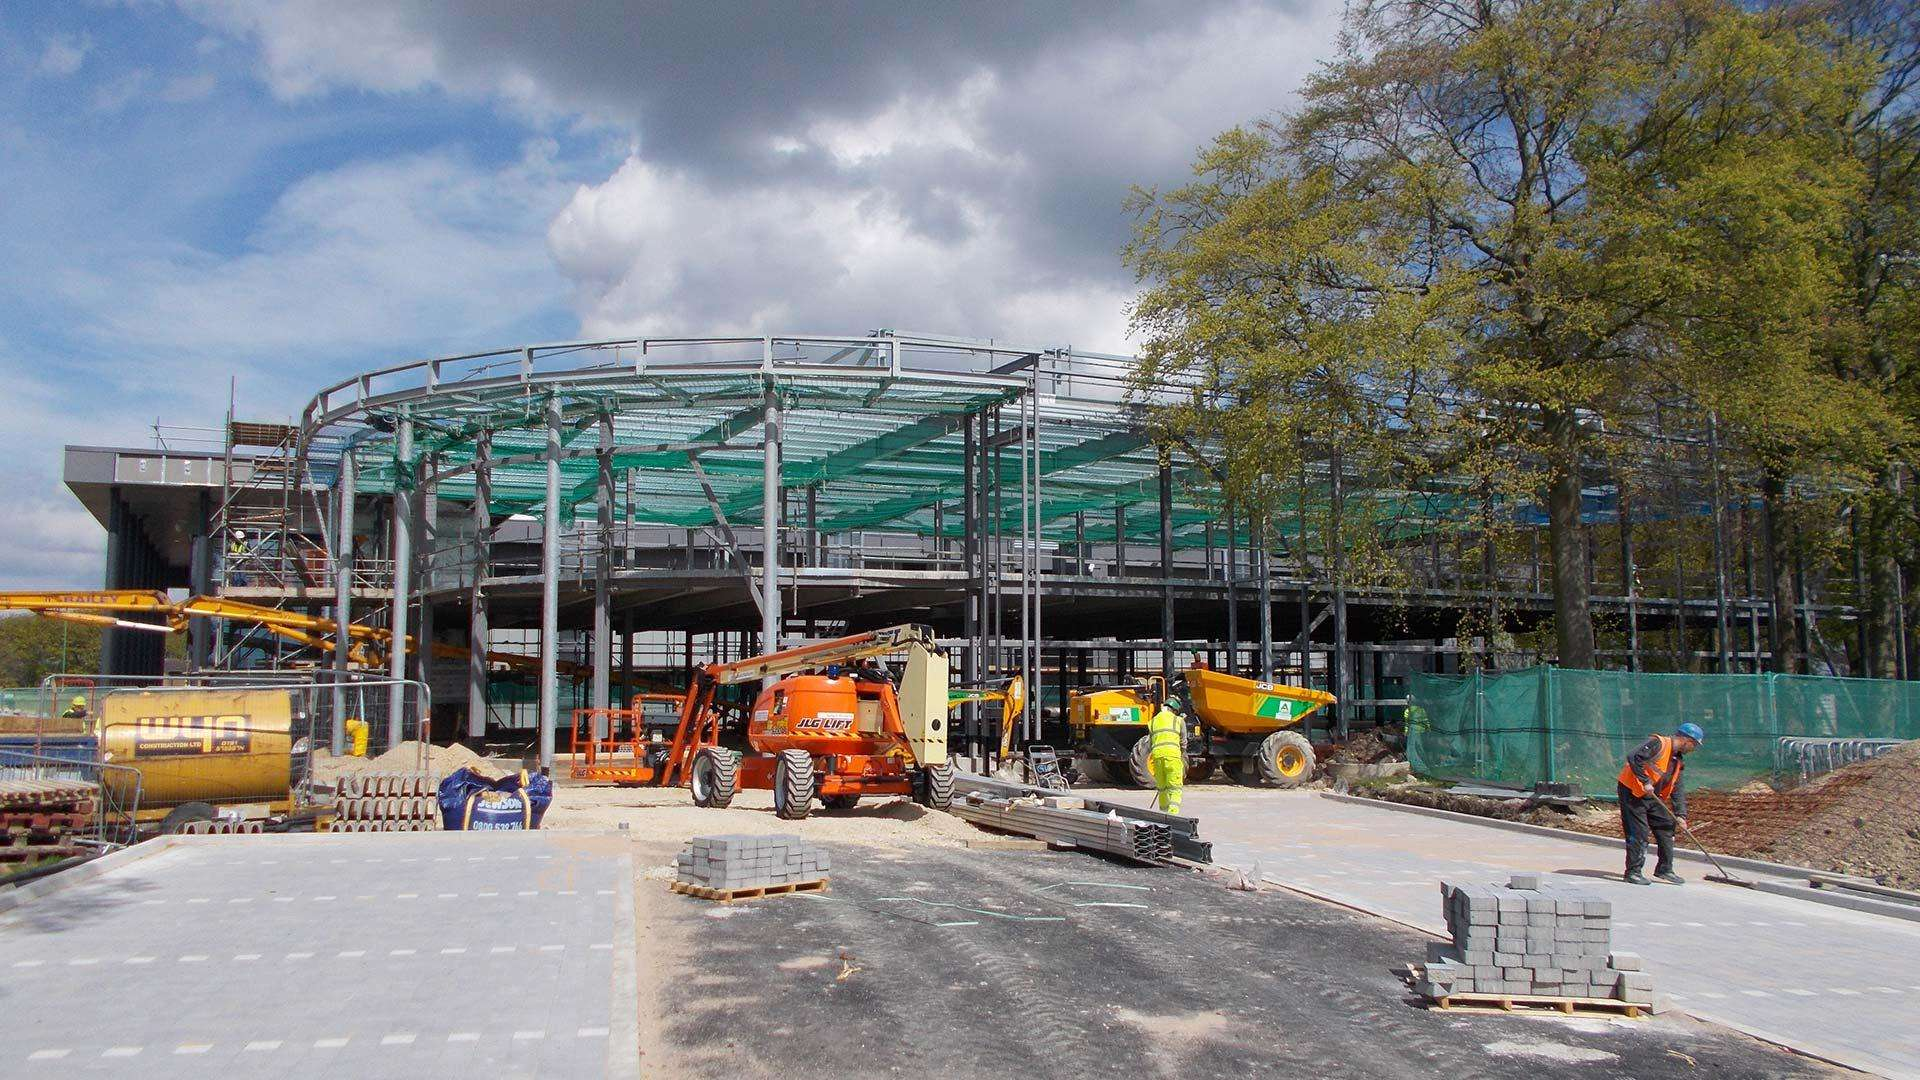 Building work continues on the National Centre for Healthare Photonics